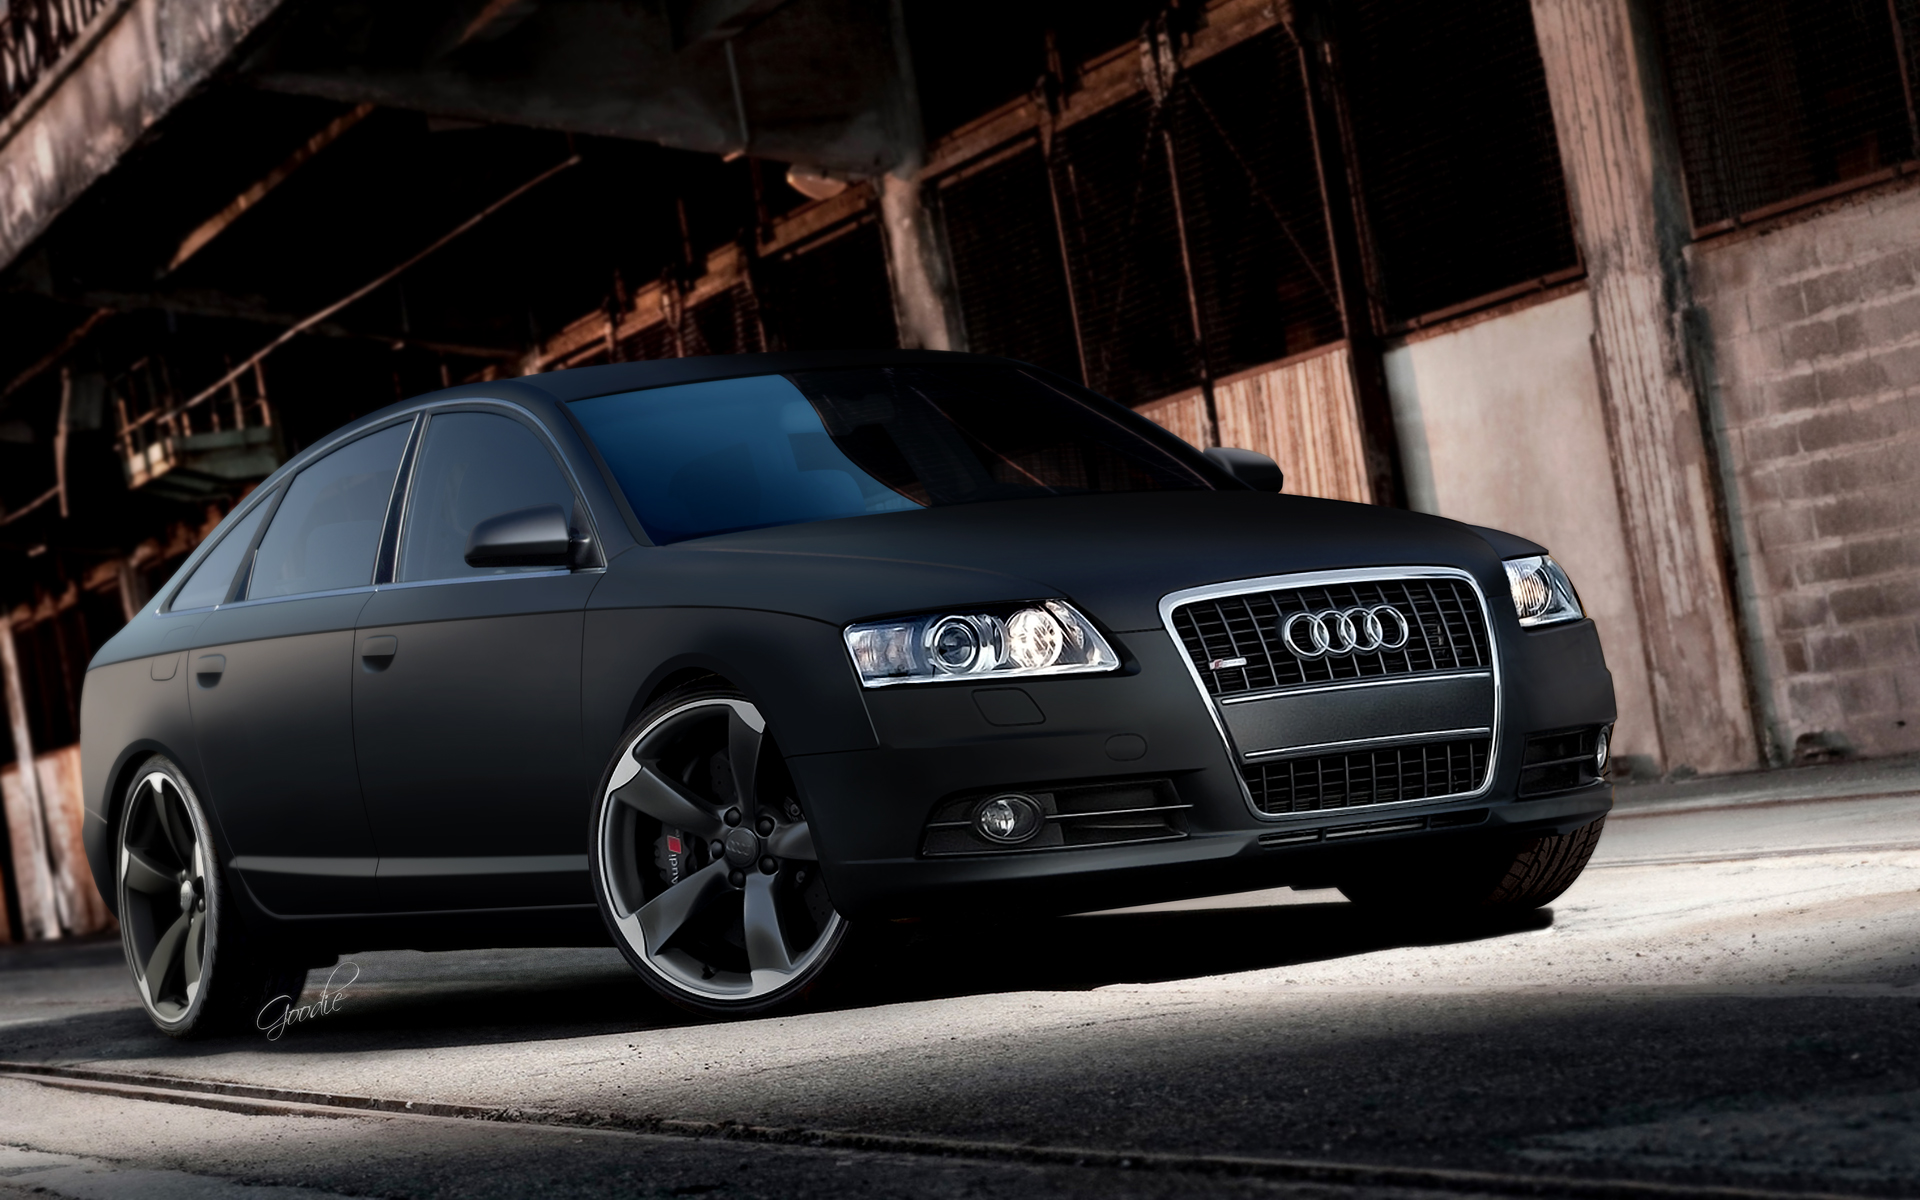 11 Audi A6 HD Wallpapers | Background Images - Wallpaper Abyss